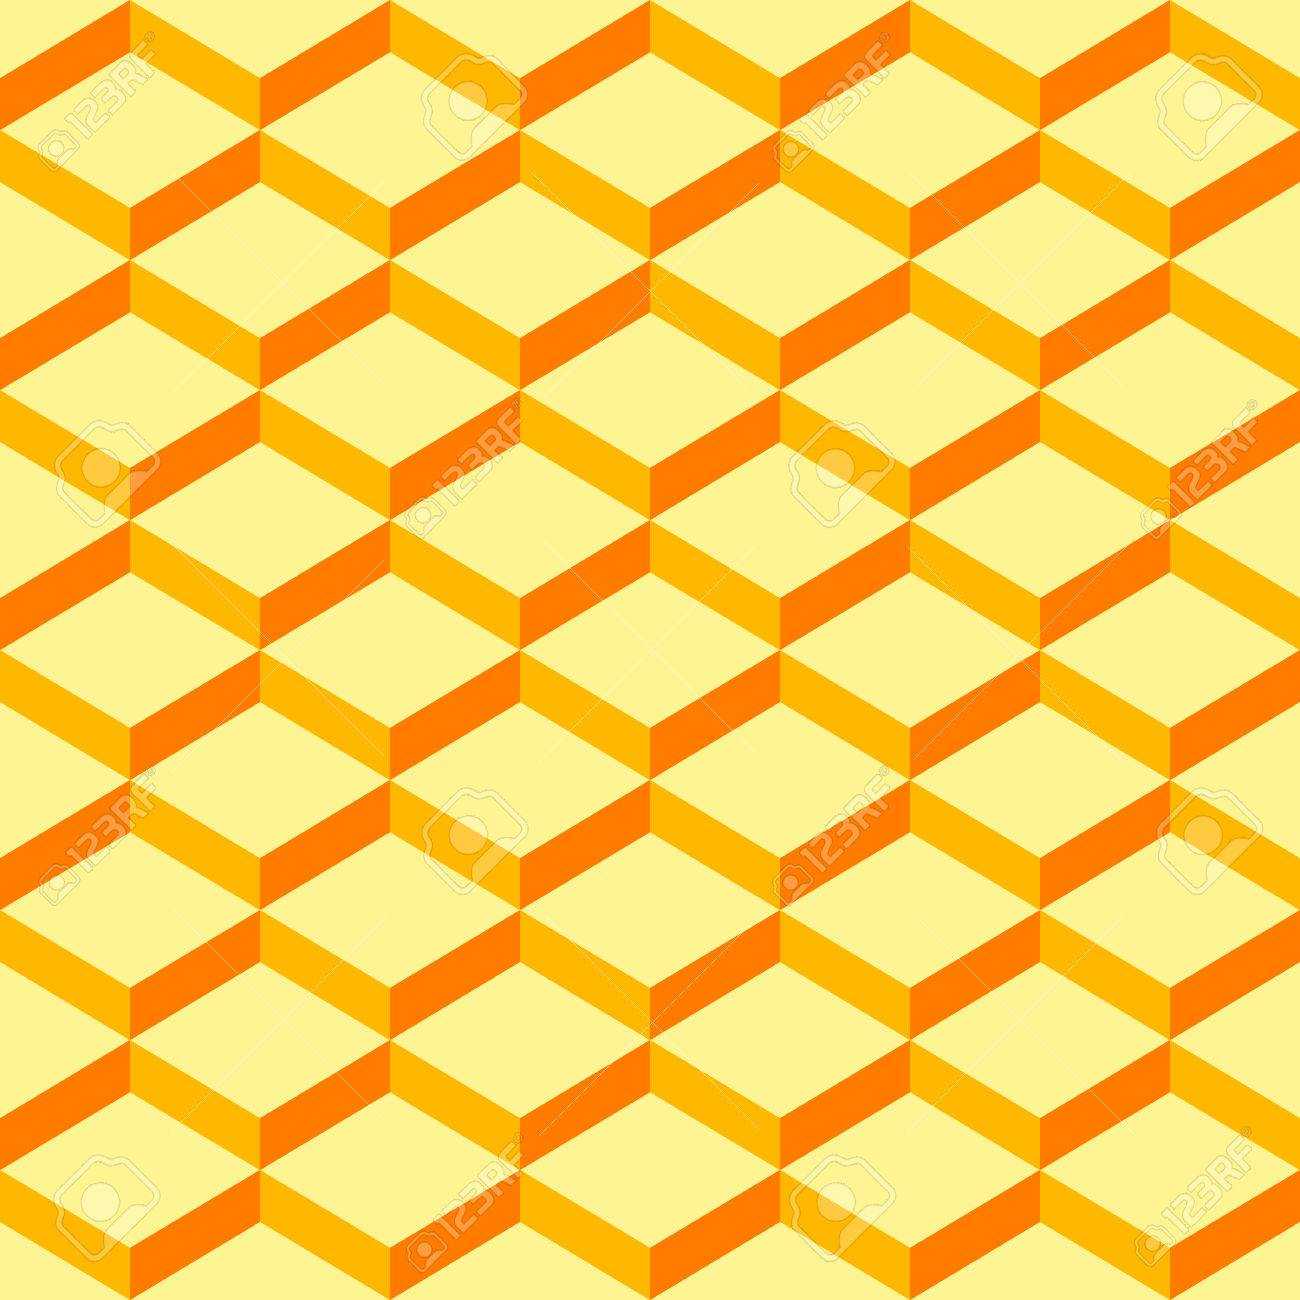 36125905 abstract orange geometric patterns background seamless designs can be used for wallpaper pattern fil